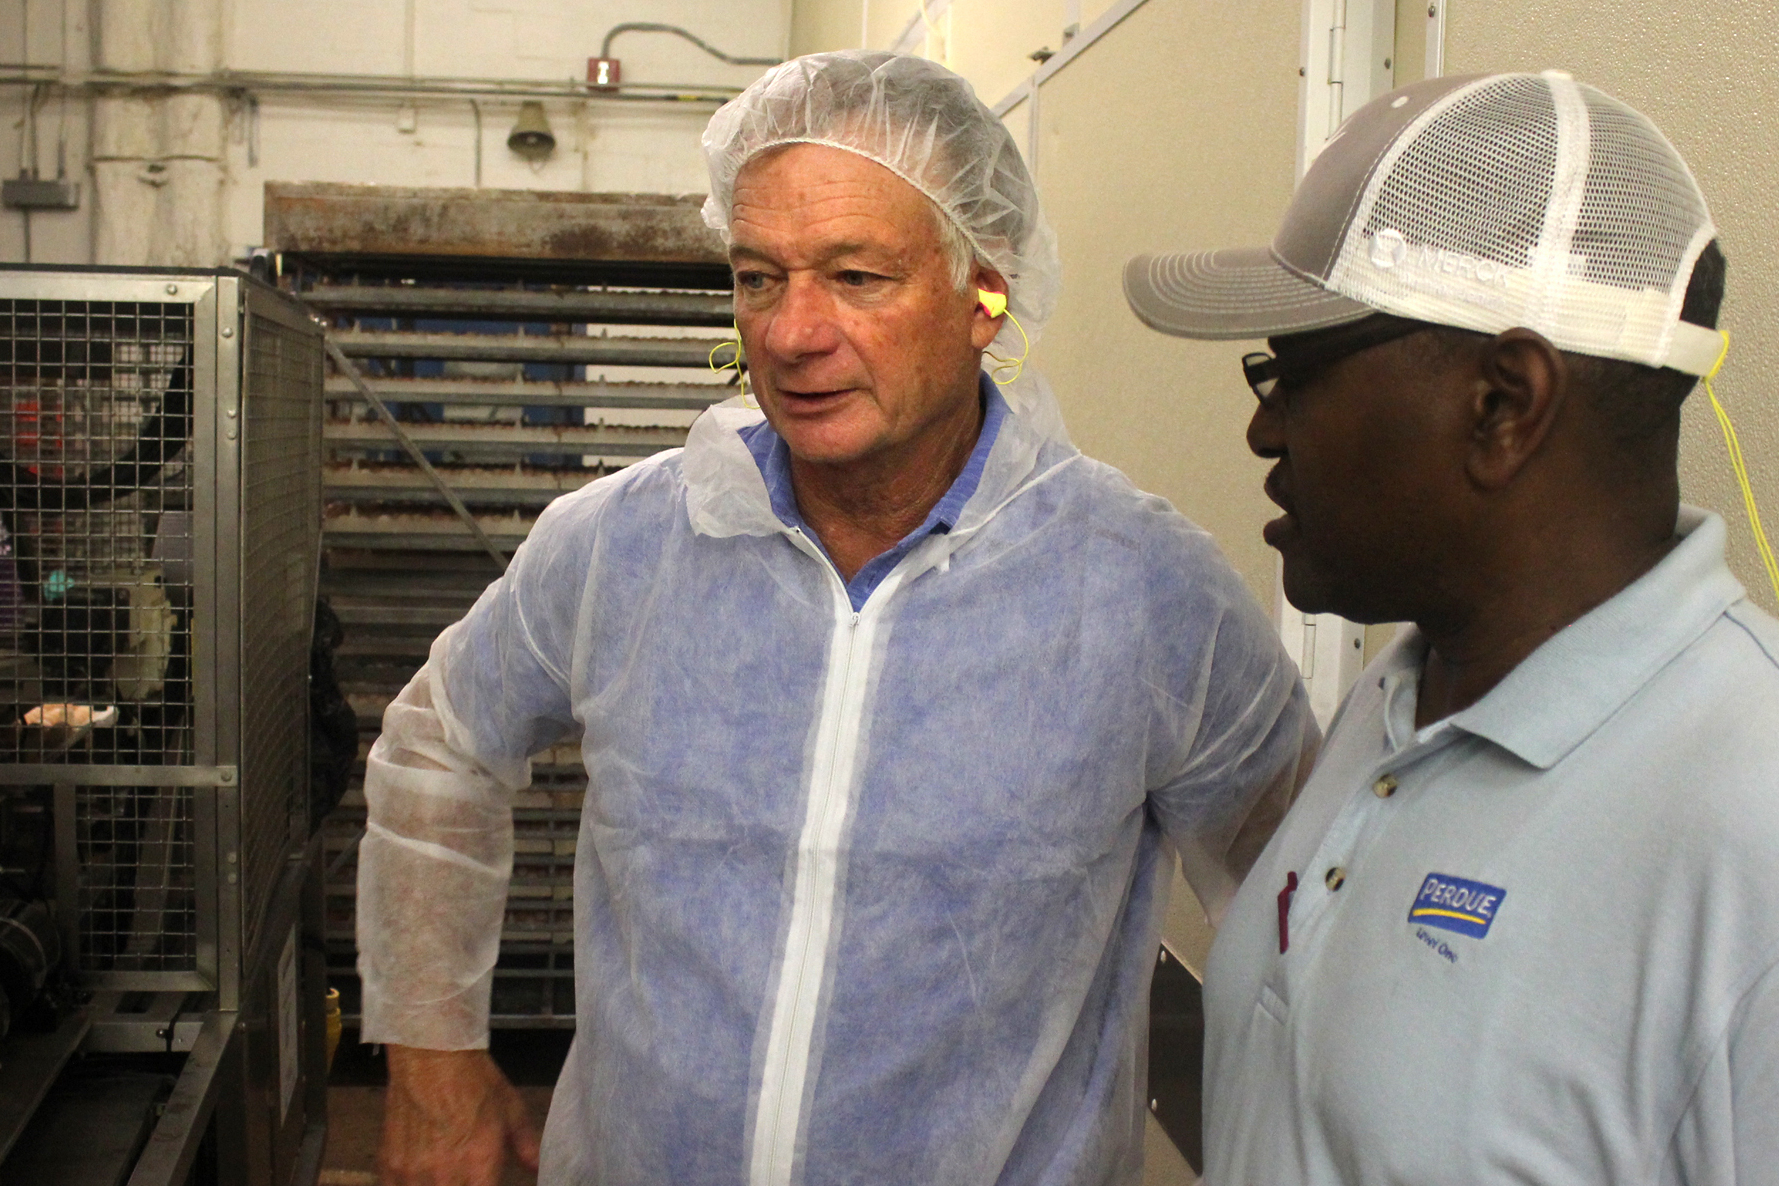 At left, CEO Jim Perdue inside the company's hatchery in Salisbury, Md. Photo: Dan Charles/NPR